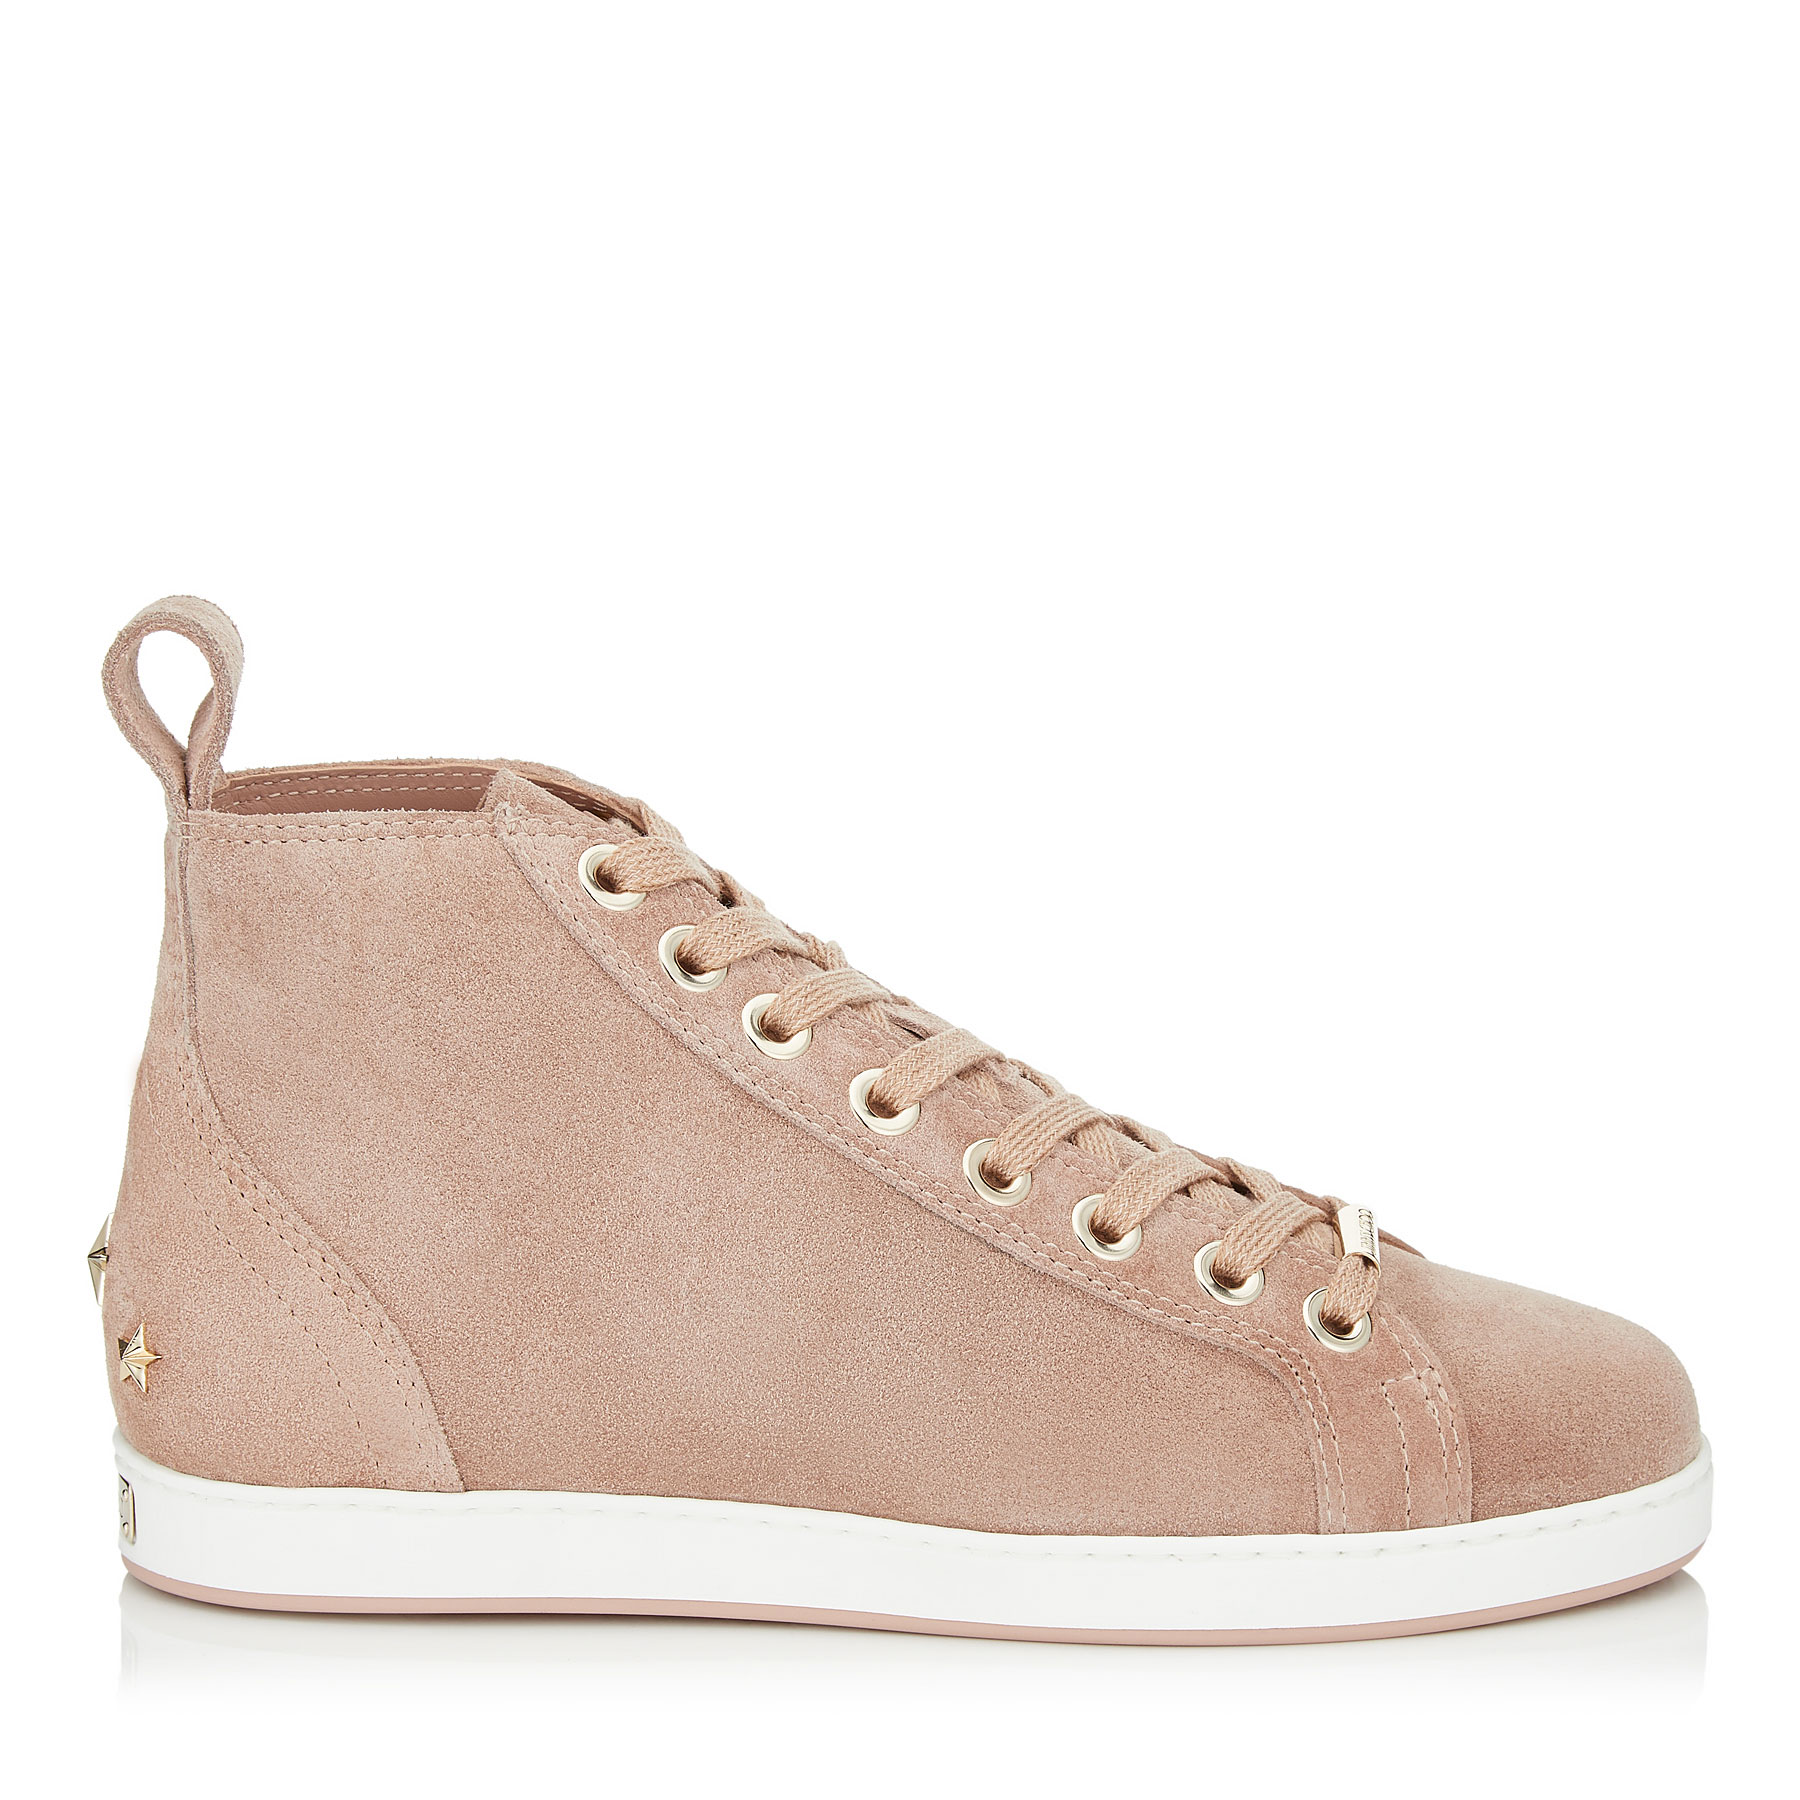 COLT/F Ballet Pink Velvet Suede High Top Trainers by Jimmy Choo